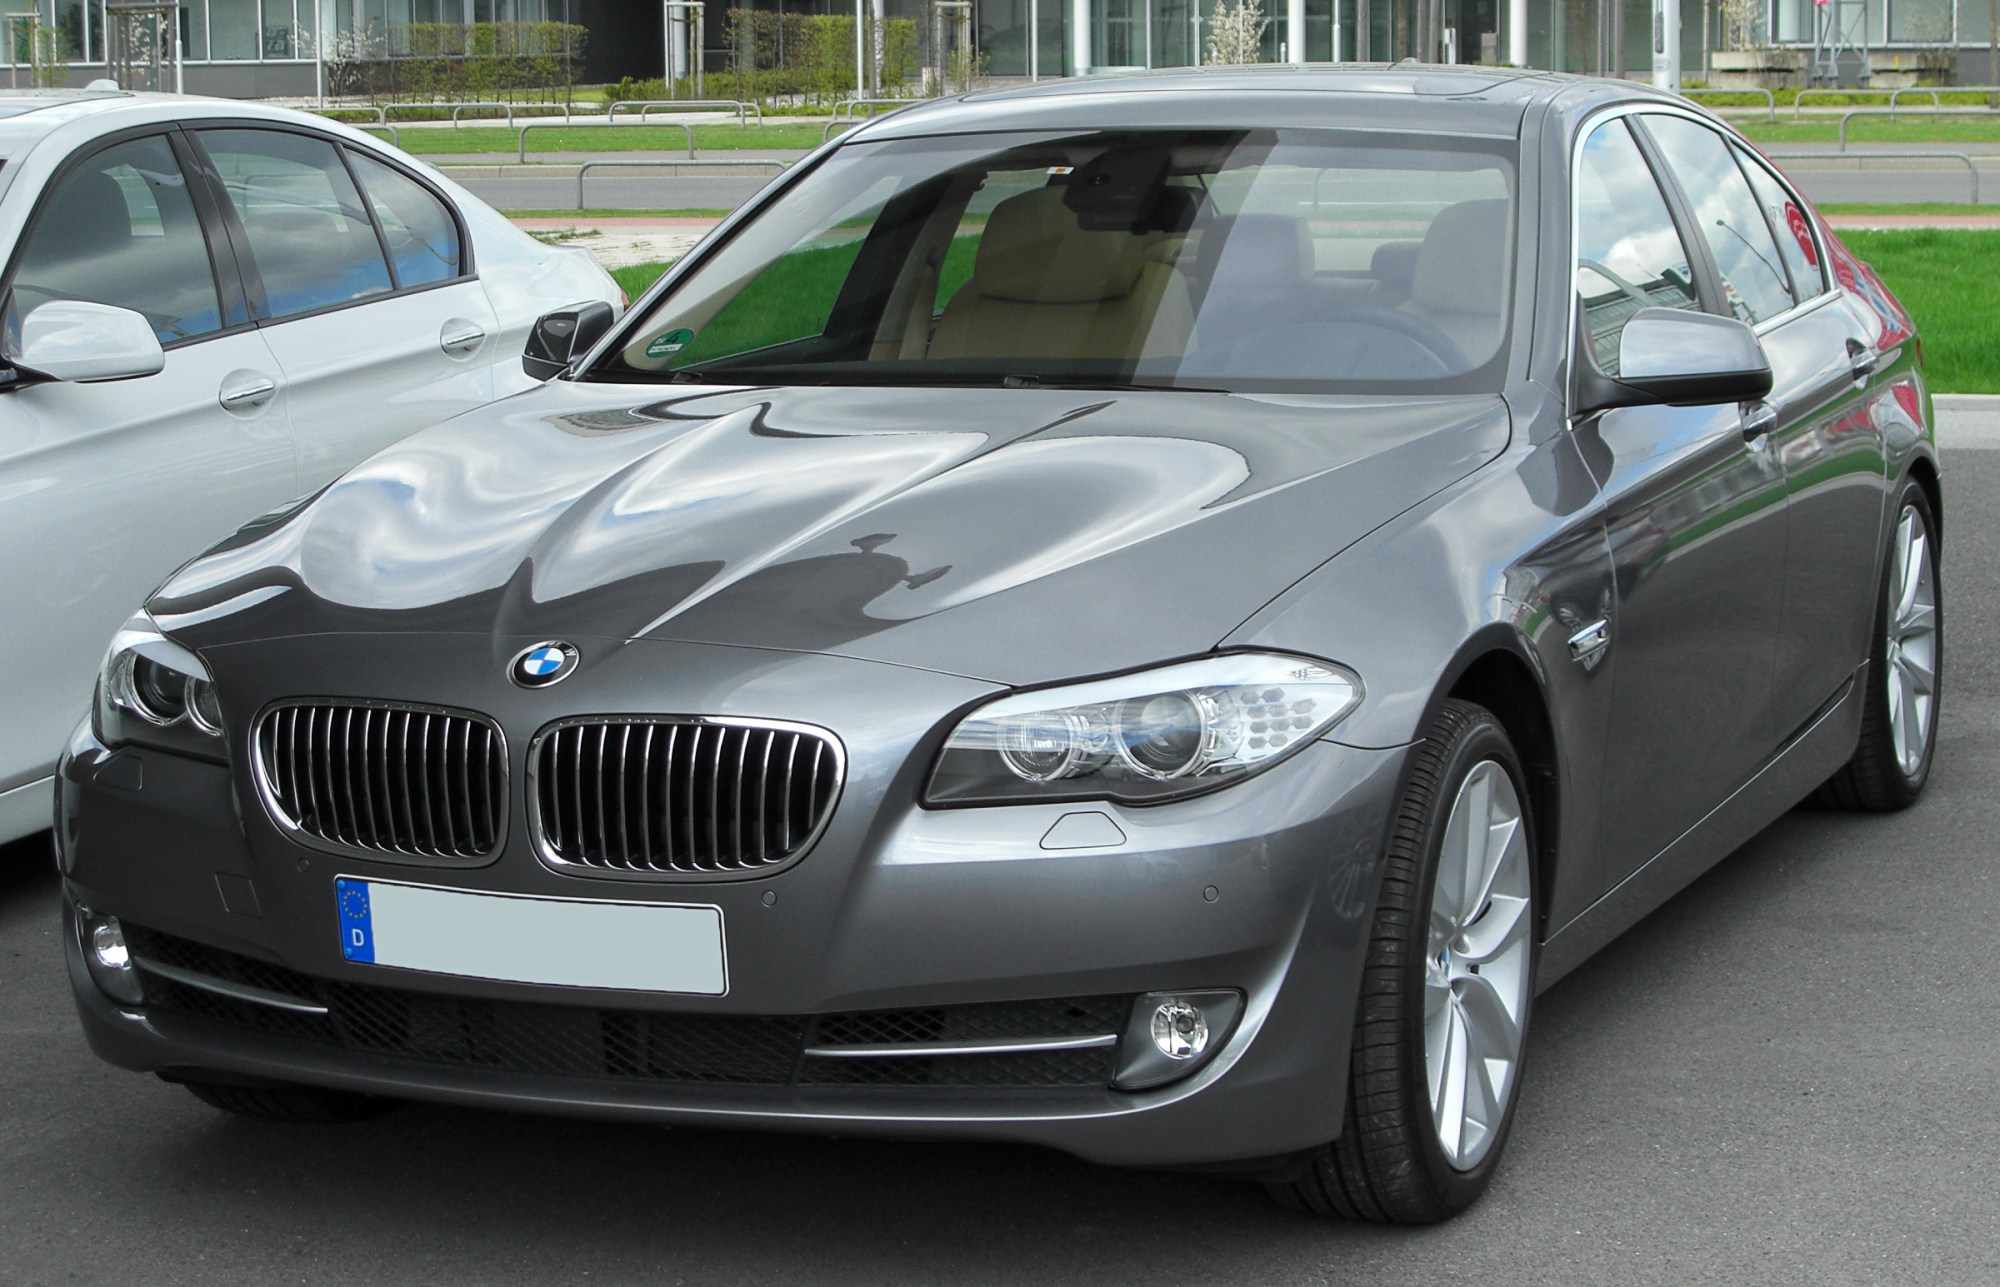 hight resolution of file bmw 535i f10 front 1 20100410 jpg